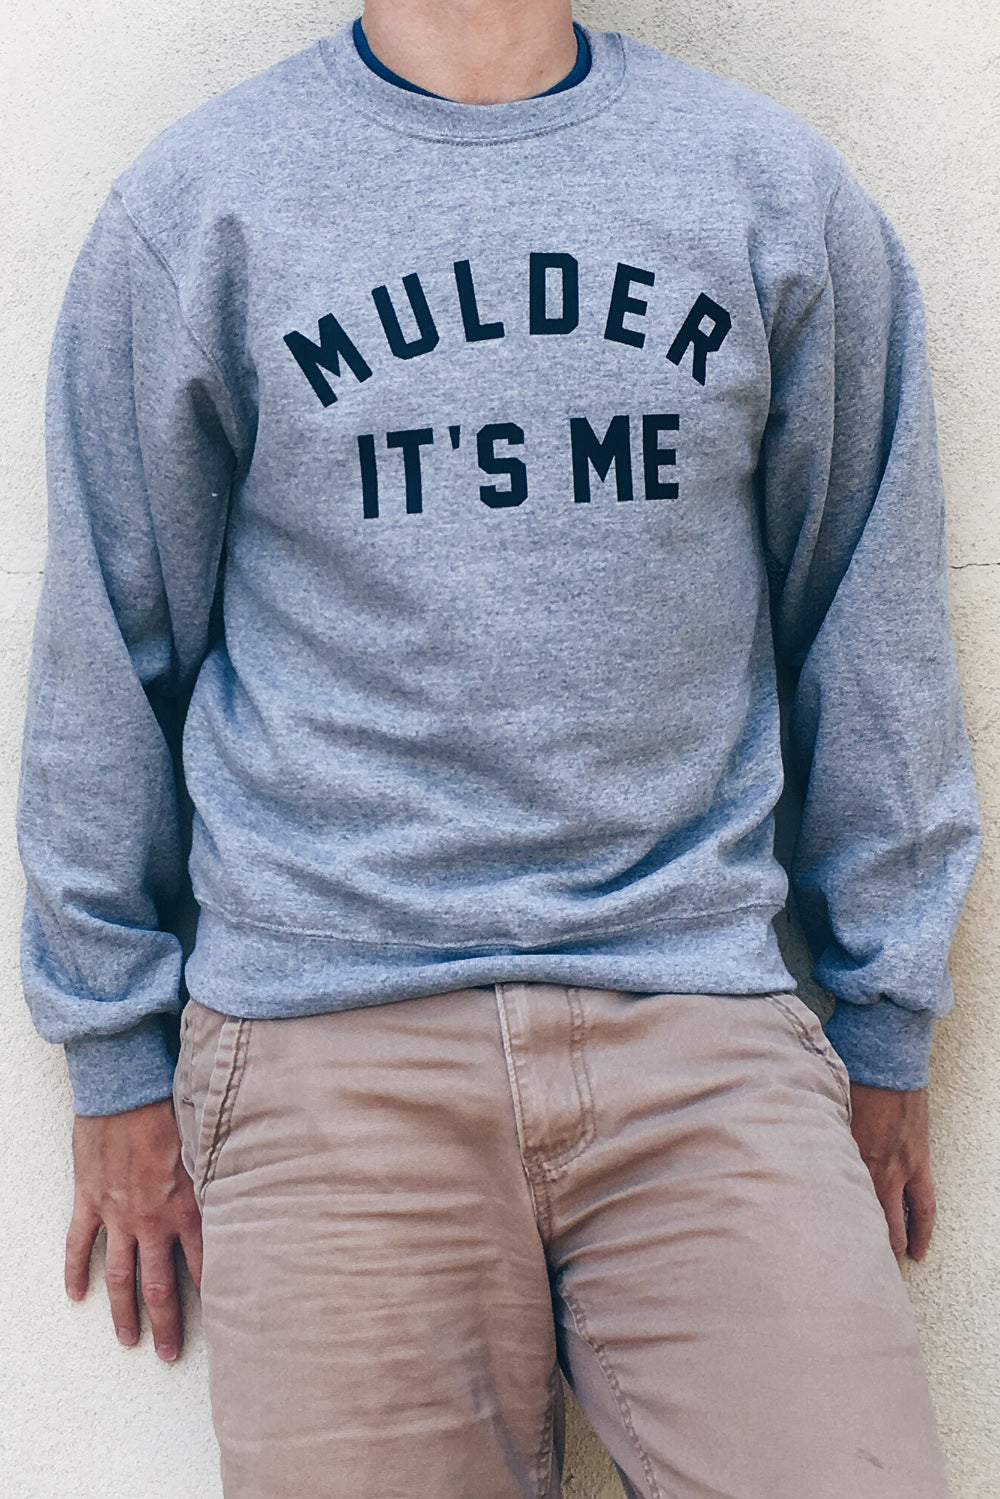 Mulder It's Me The X-Files Sweatshirt - Totally Good Time